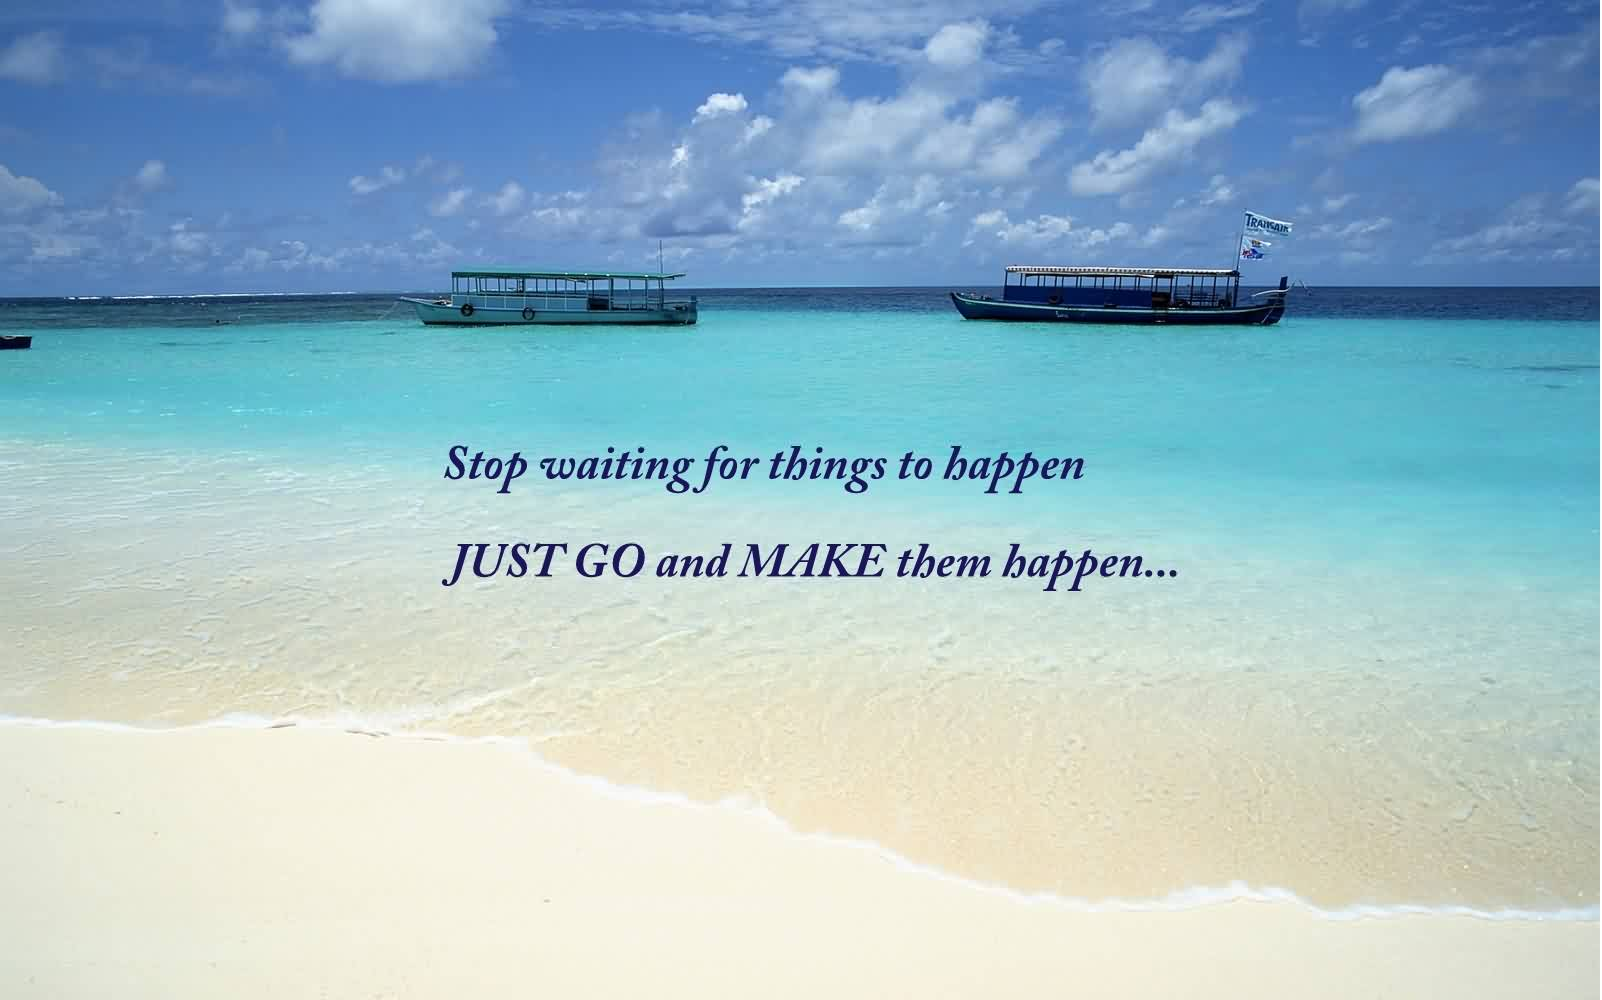 Inspirational Life Quotes Images-Stop Waiting for things to happen